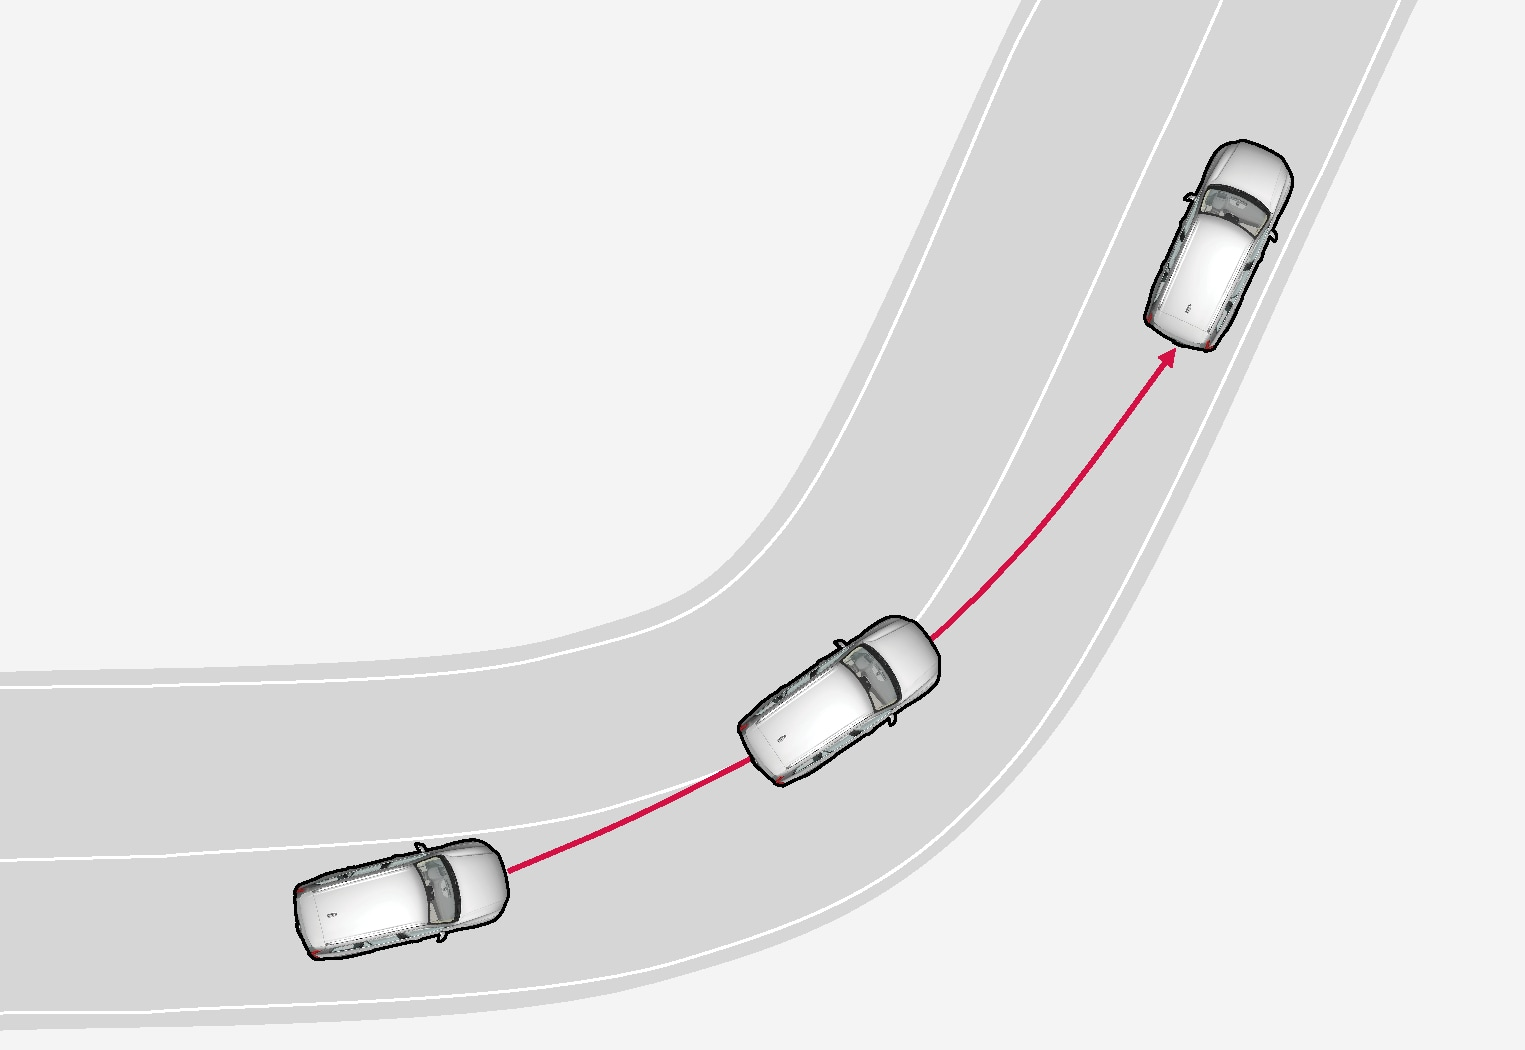 P5-1507-Lane keeping aid does not engage on sharp inside curves